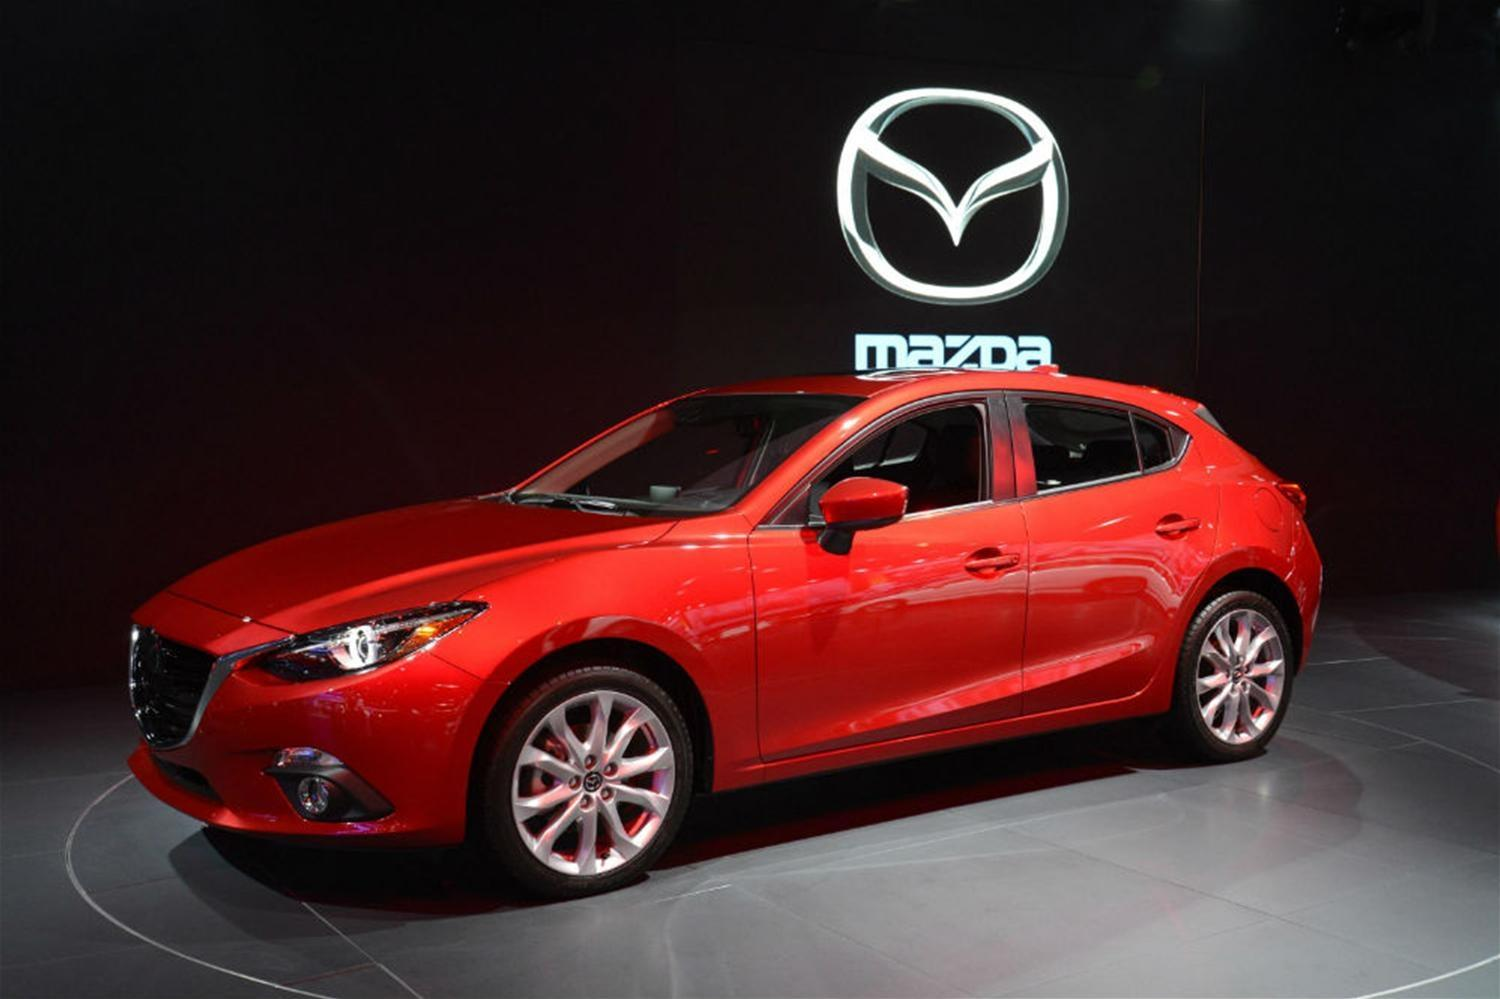 A guide to the 2014 Mazda3